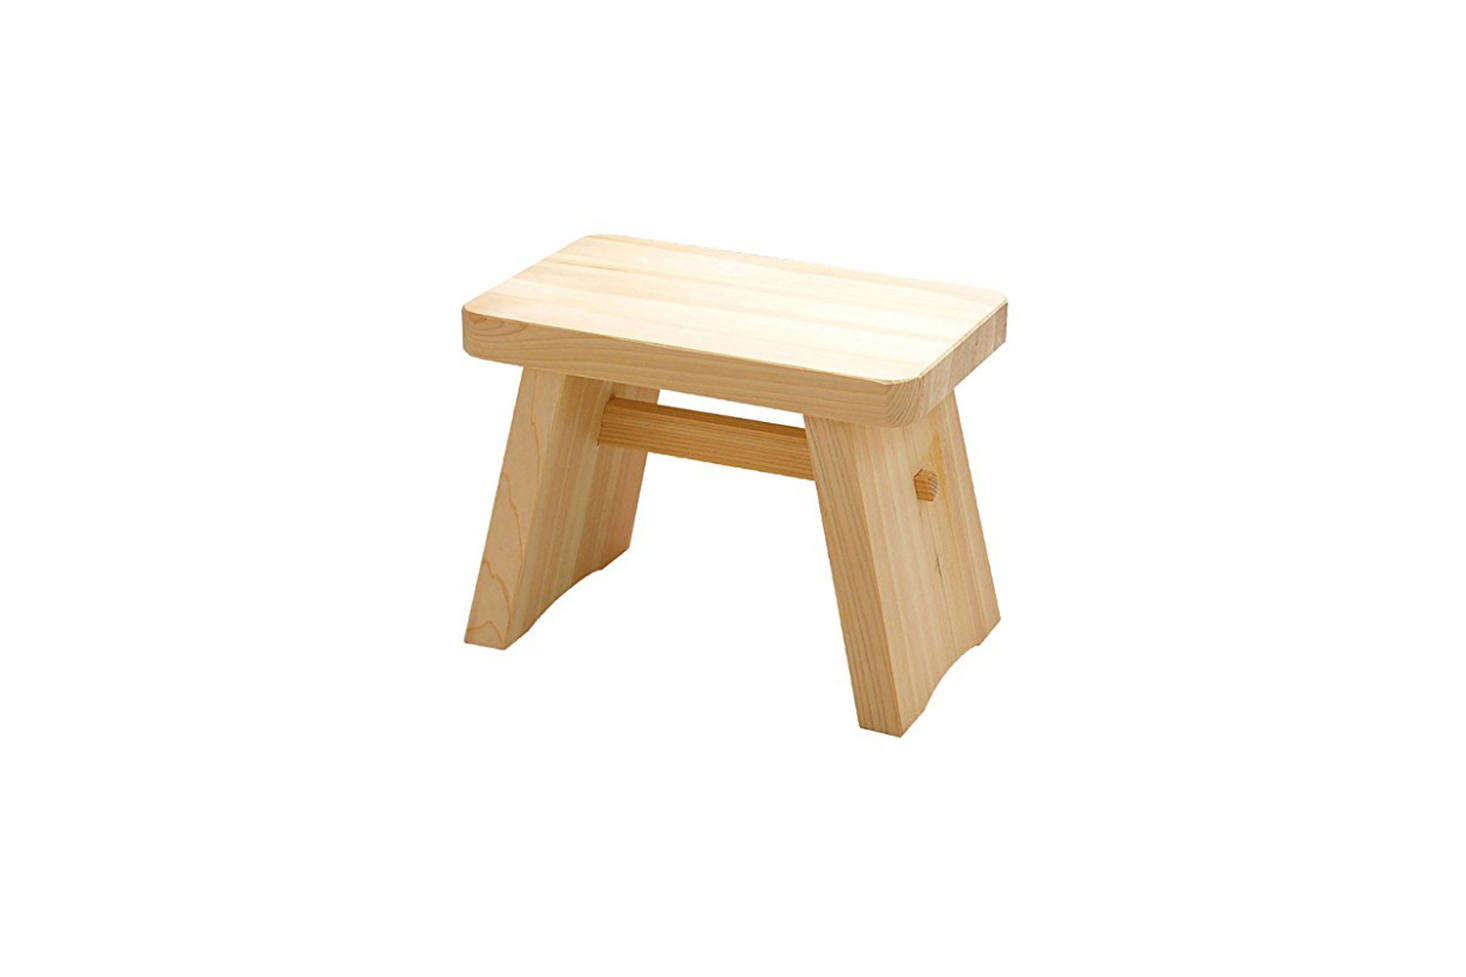 For an instant-spa look, a short Hinoki wood stool is a Japanese bathhouse essential. The Youbi Hinoki Large Bath Stool is $87. on Amazon.